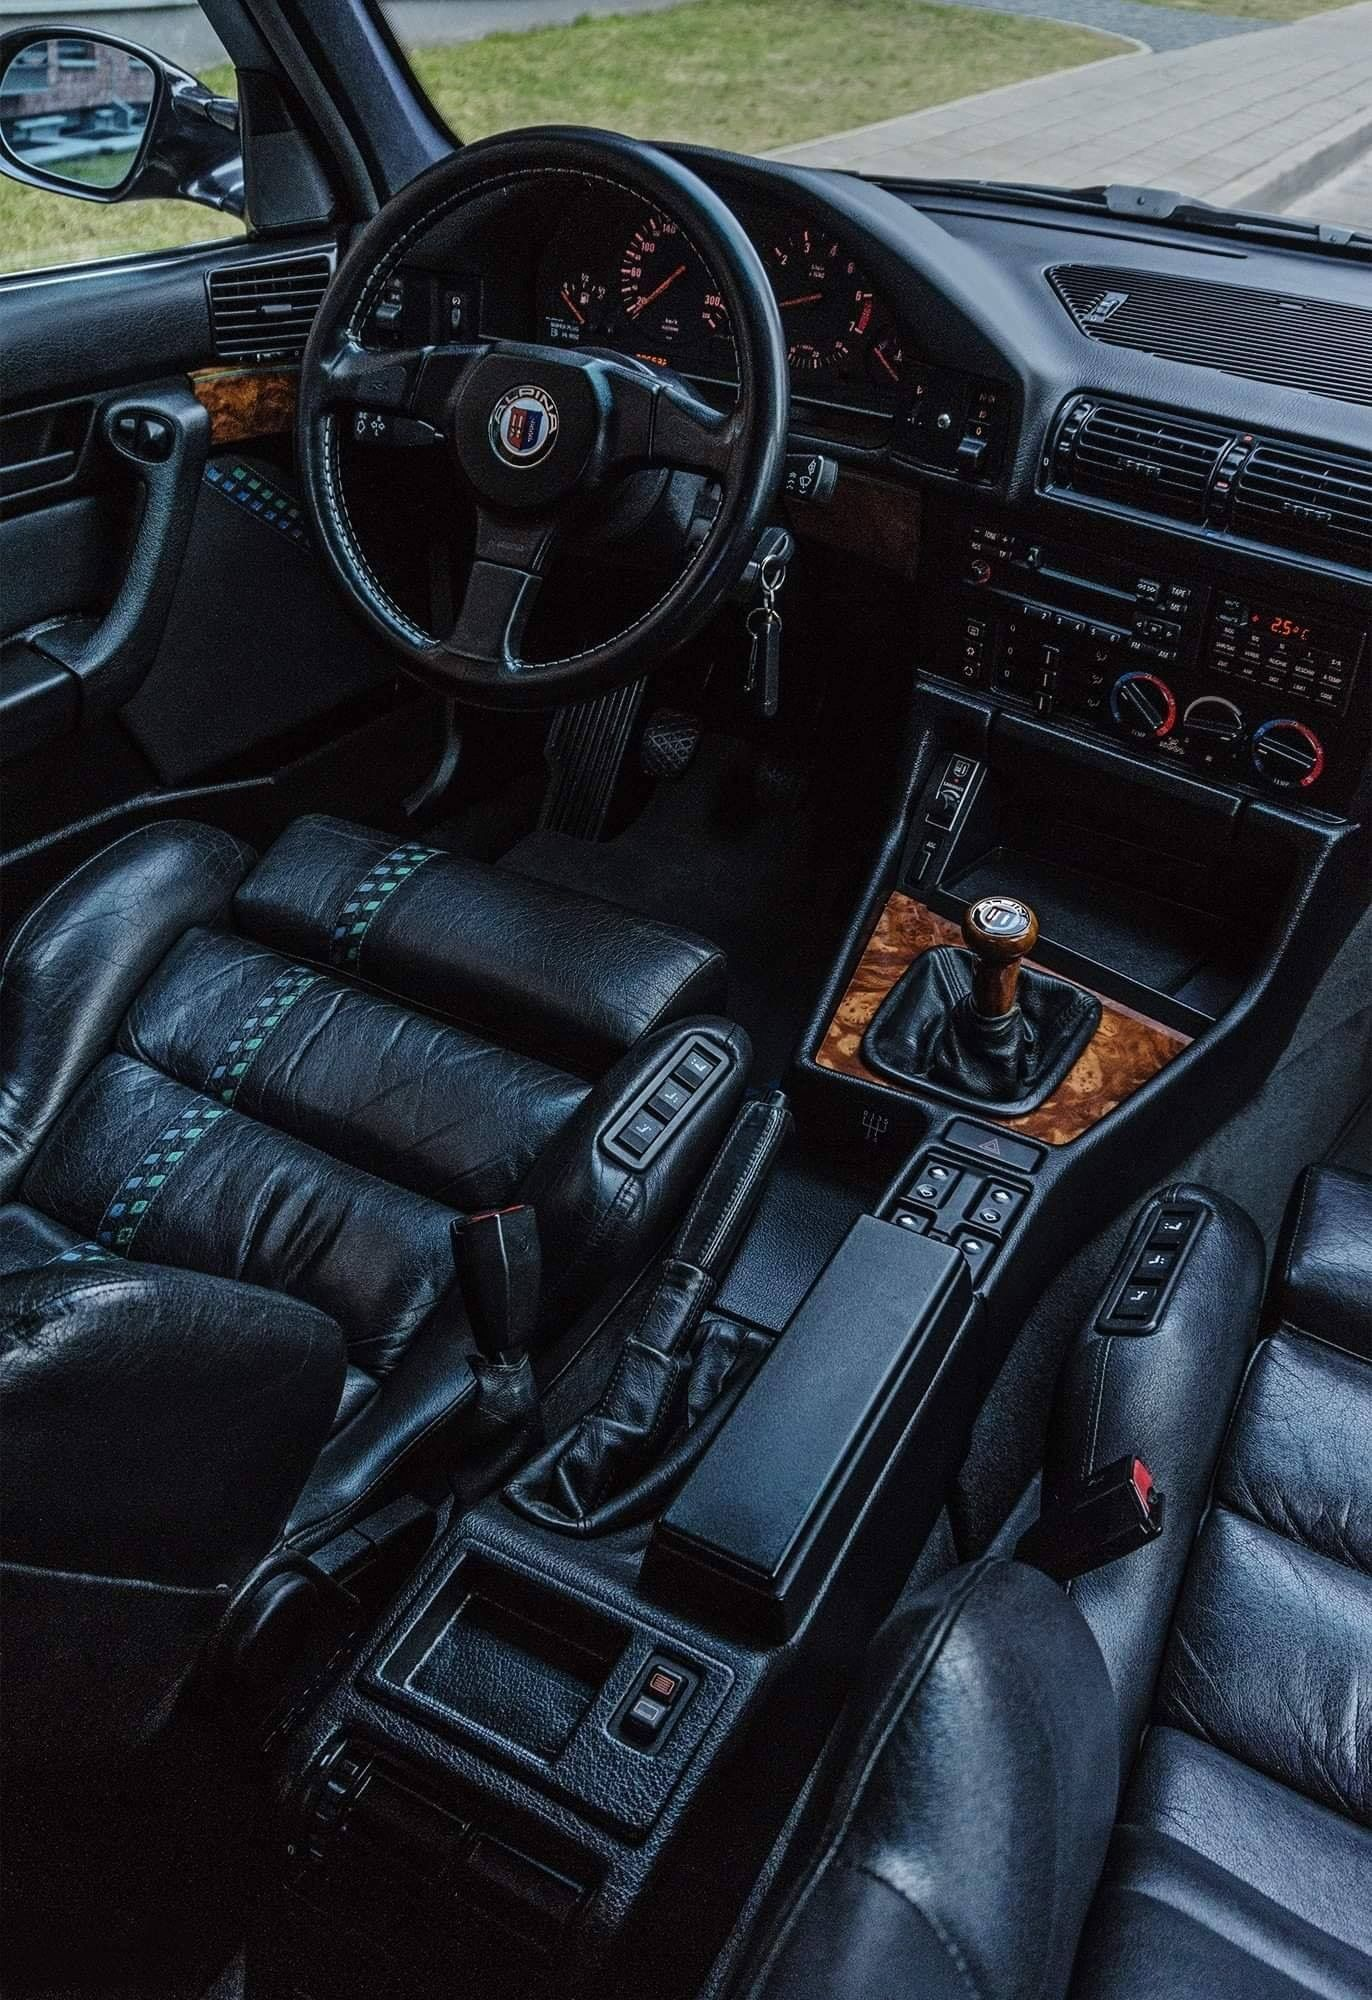 The luxurious interior of an e34 Alpina. (Not mine unable